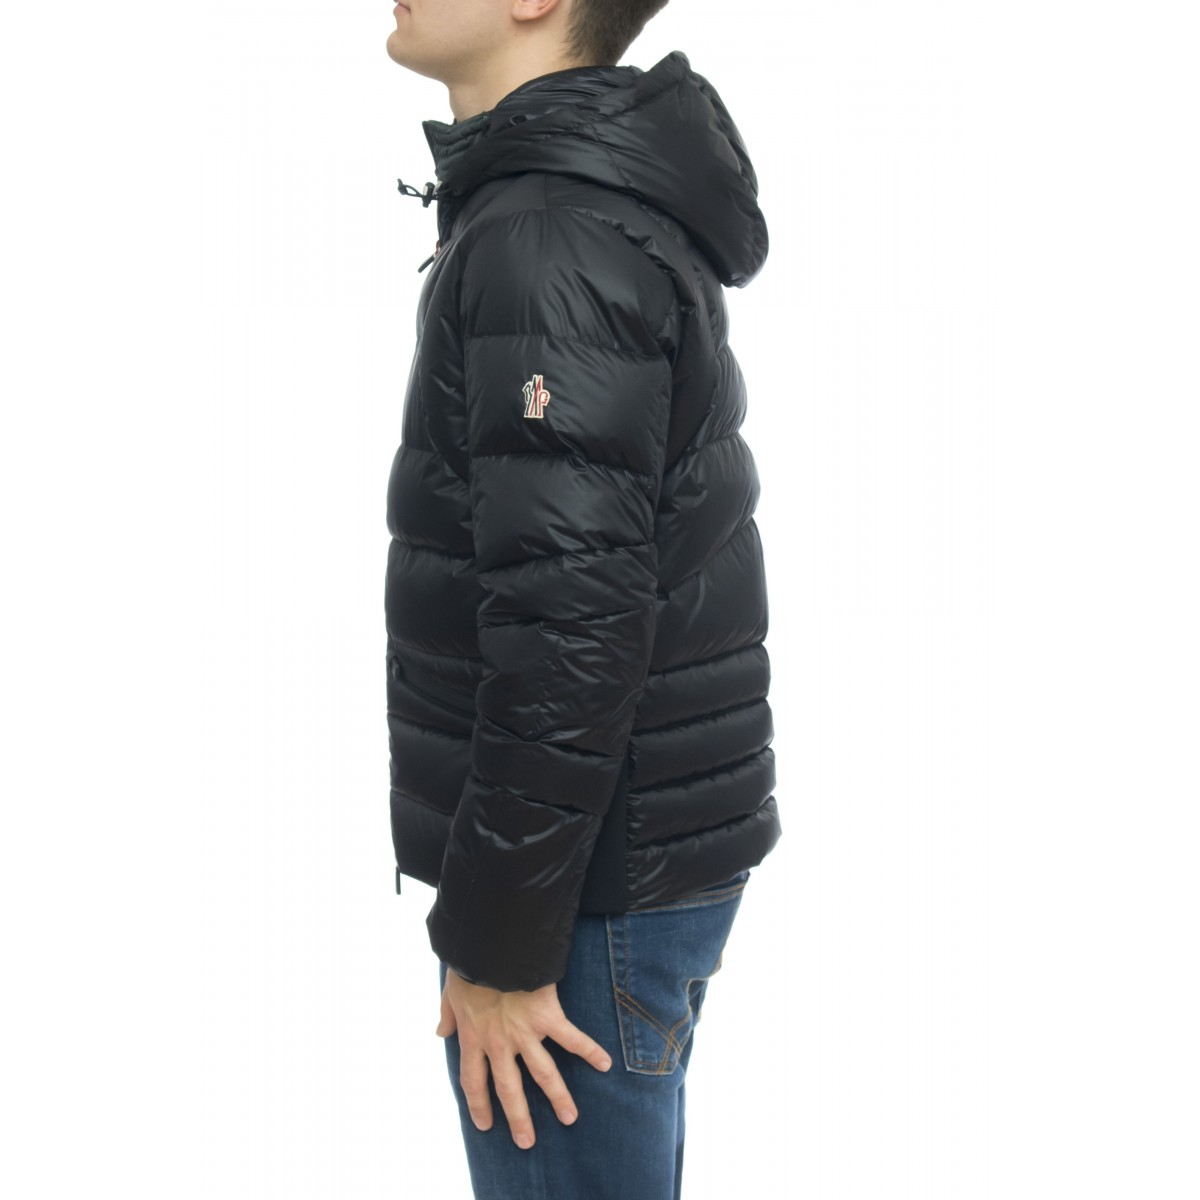 MONCLER GRENOBLE MAN MOUTHE 41381